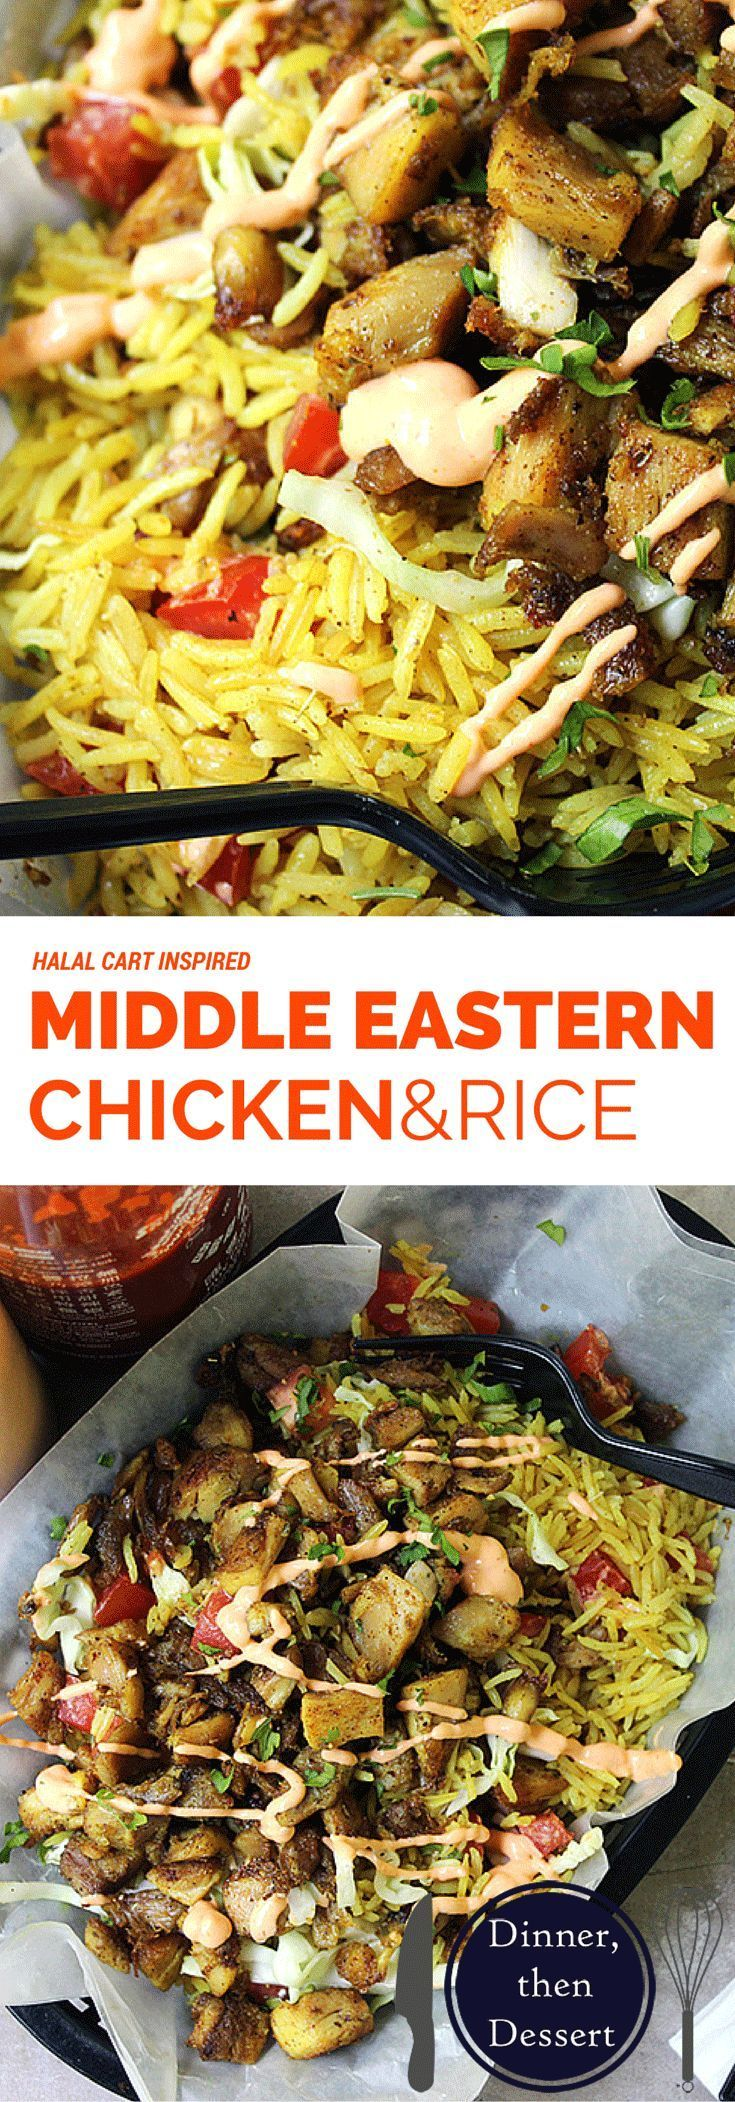 Best 25 halal recipes ideas on pinterest healthy halal cooking halal carts boldly flavored middle eastern chicken and fragrant turmeric rice with a spicy yogurt sauce forumfinder Gallery